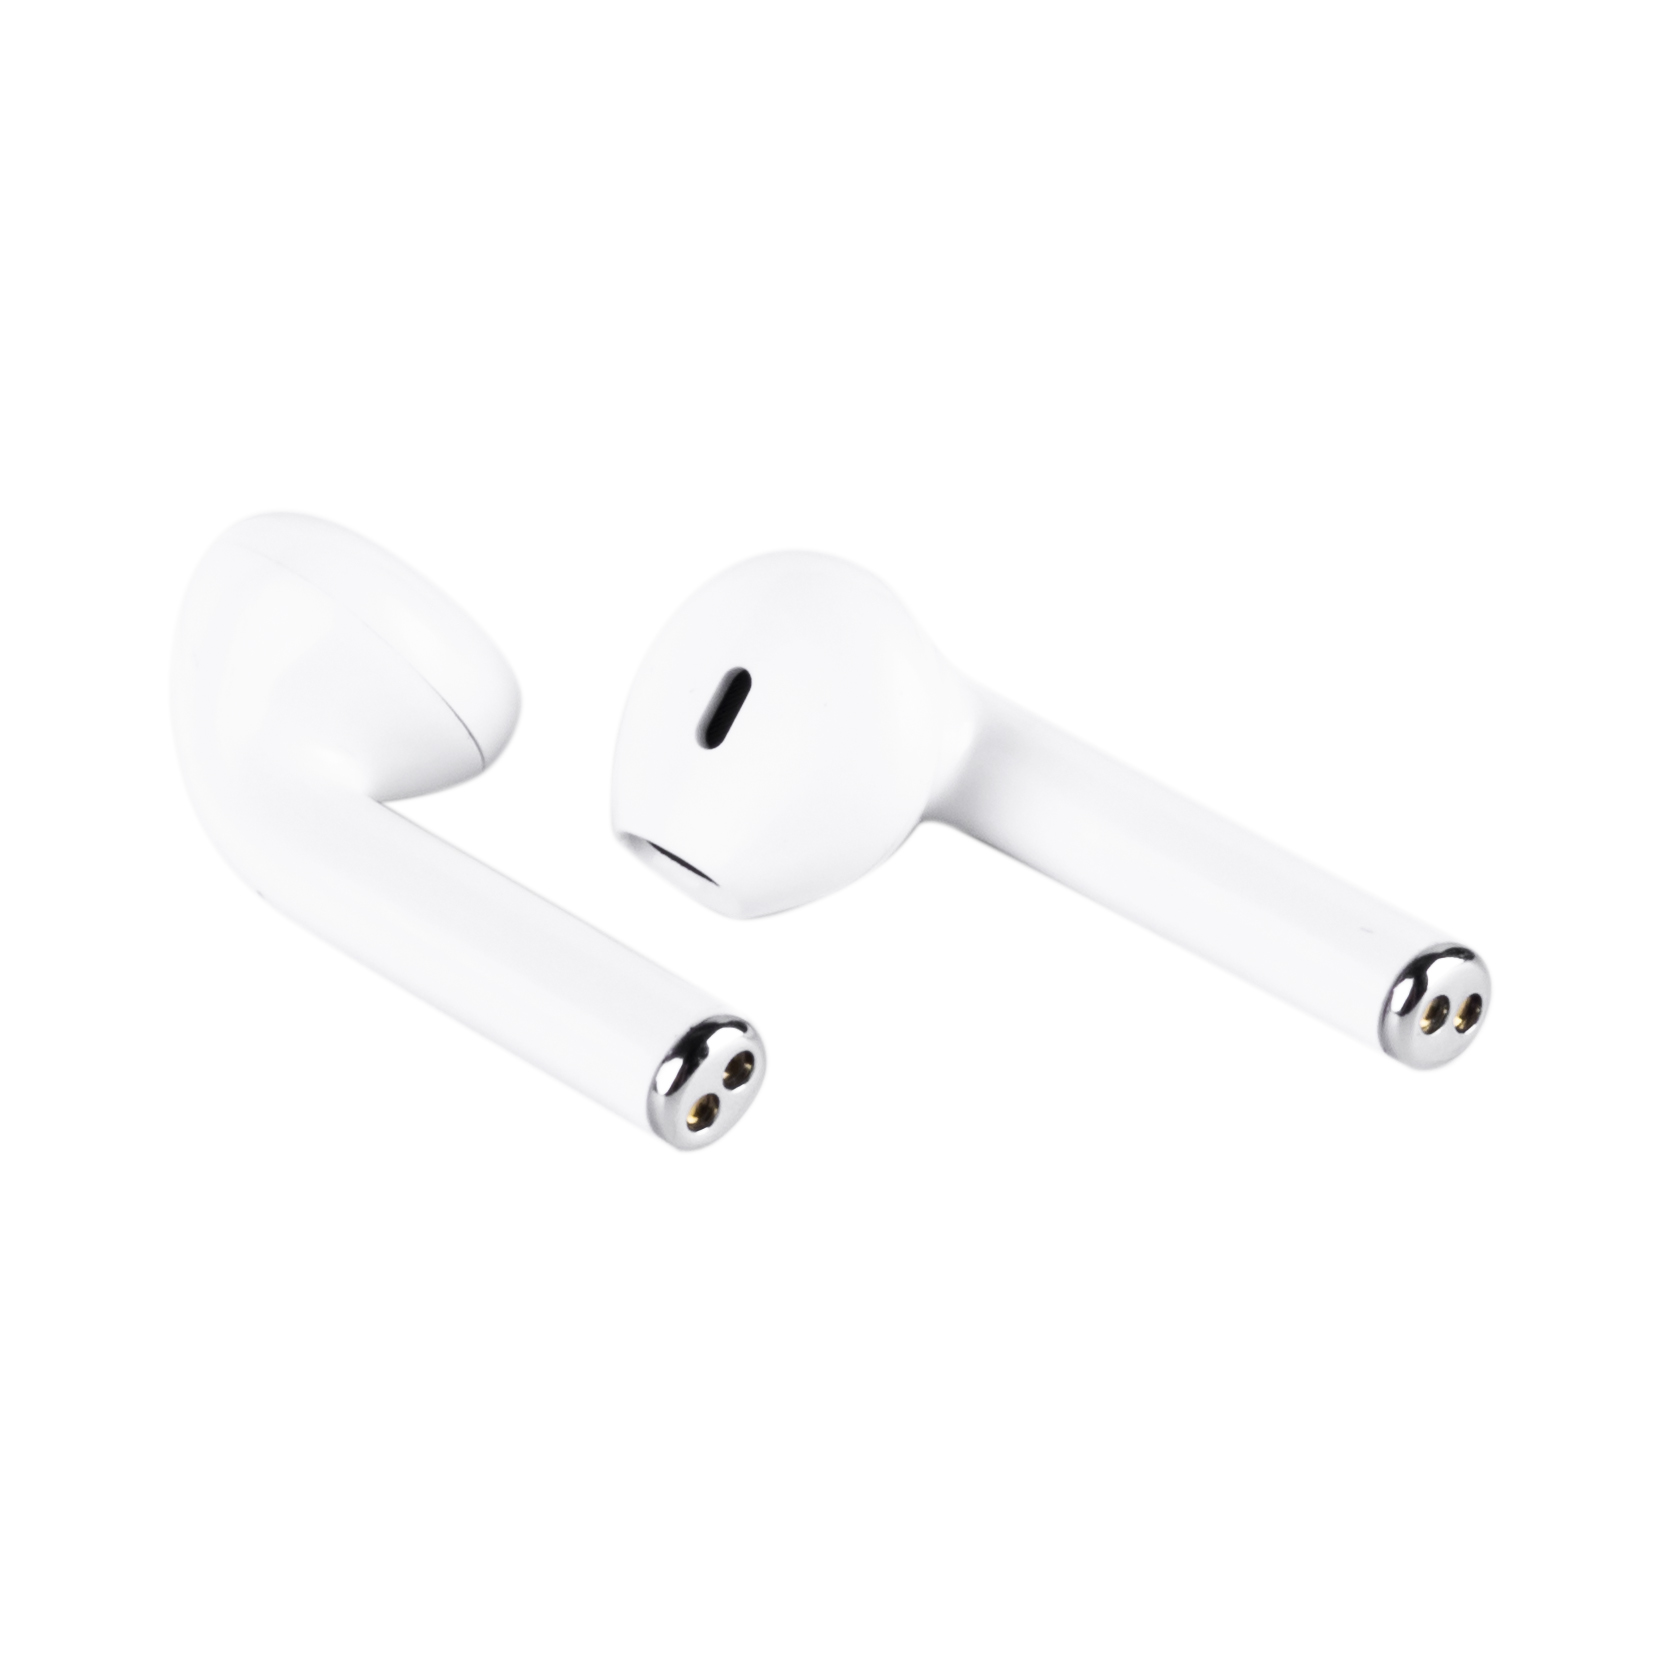 GOGU Mobile <strong>Phone</strong> Handsfree Mini True Wireless Earphone &amp; Headphone